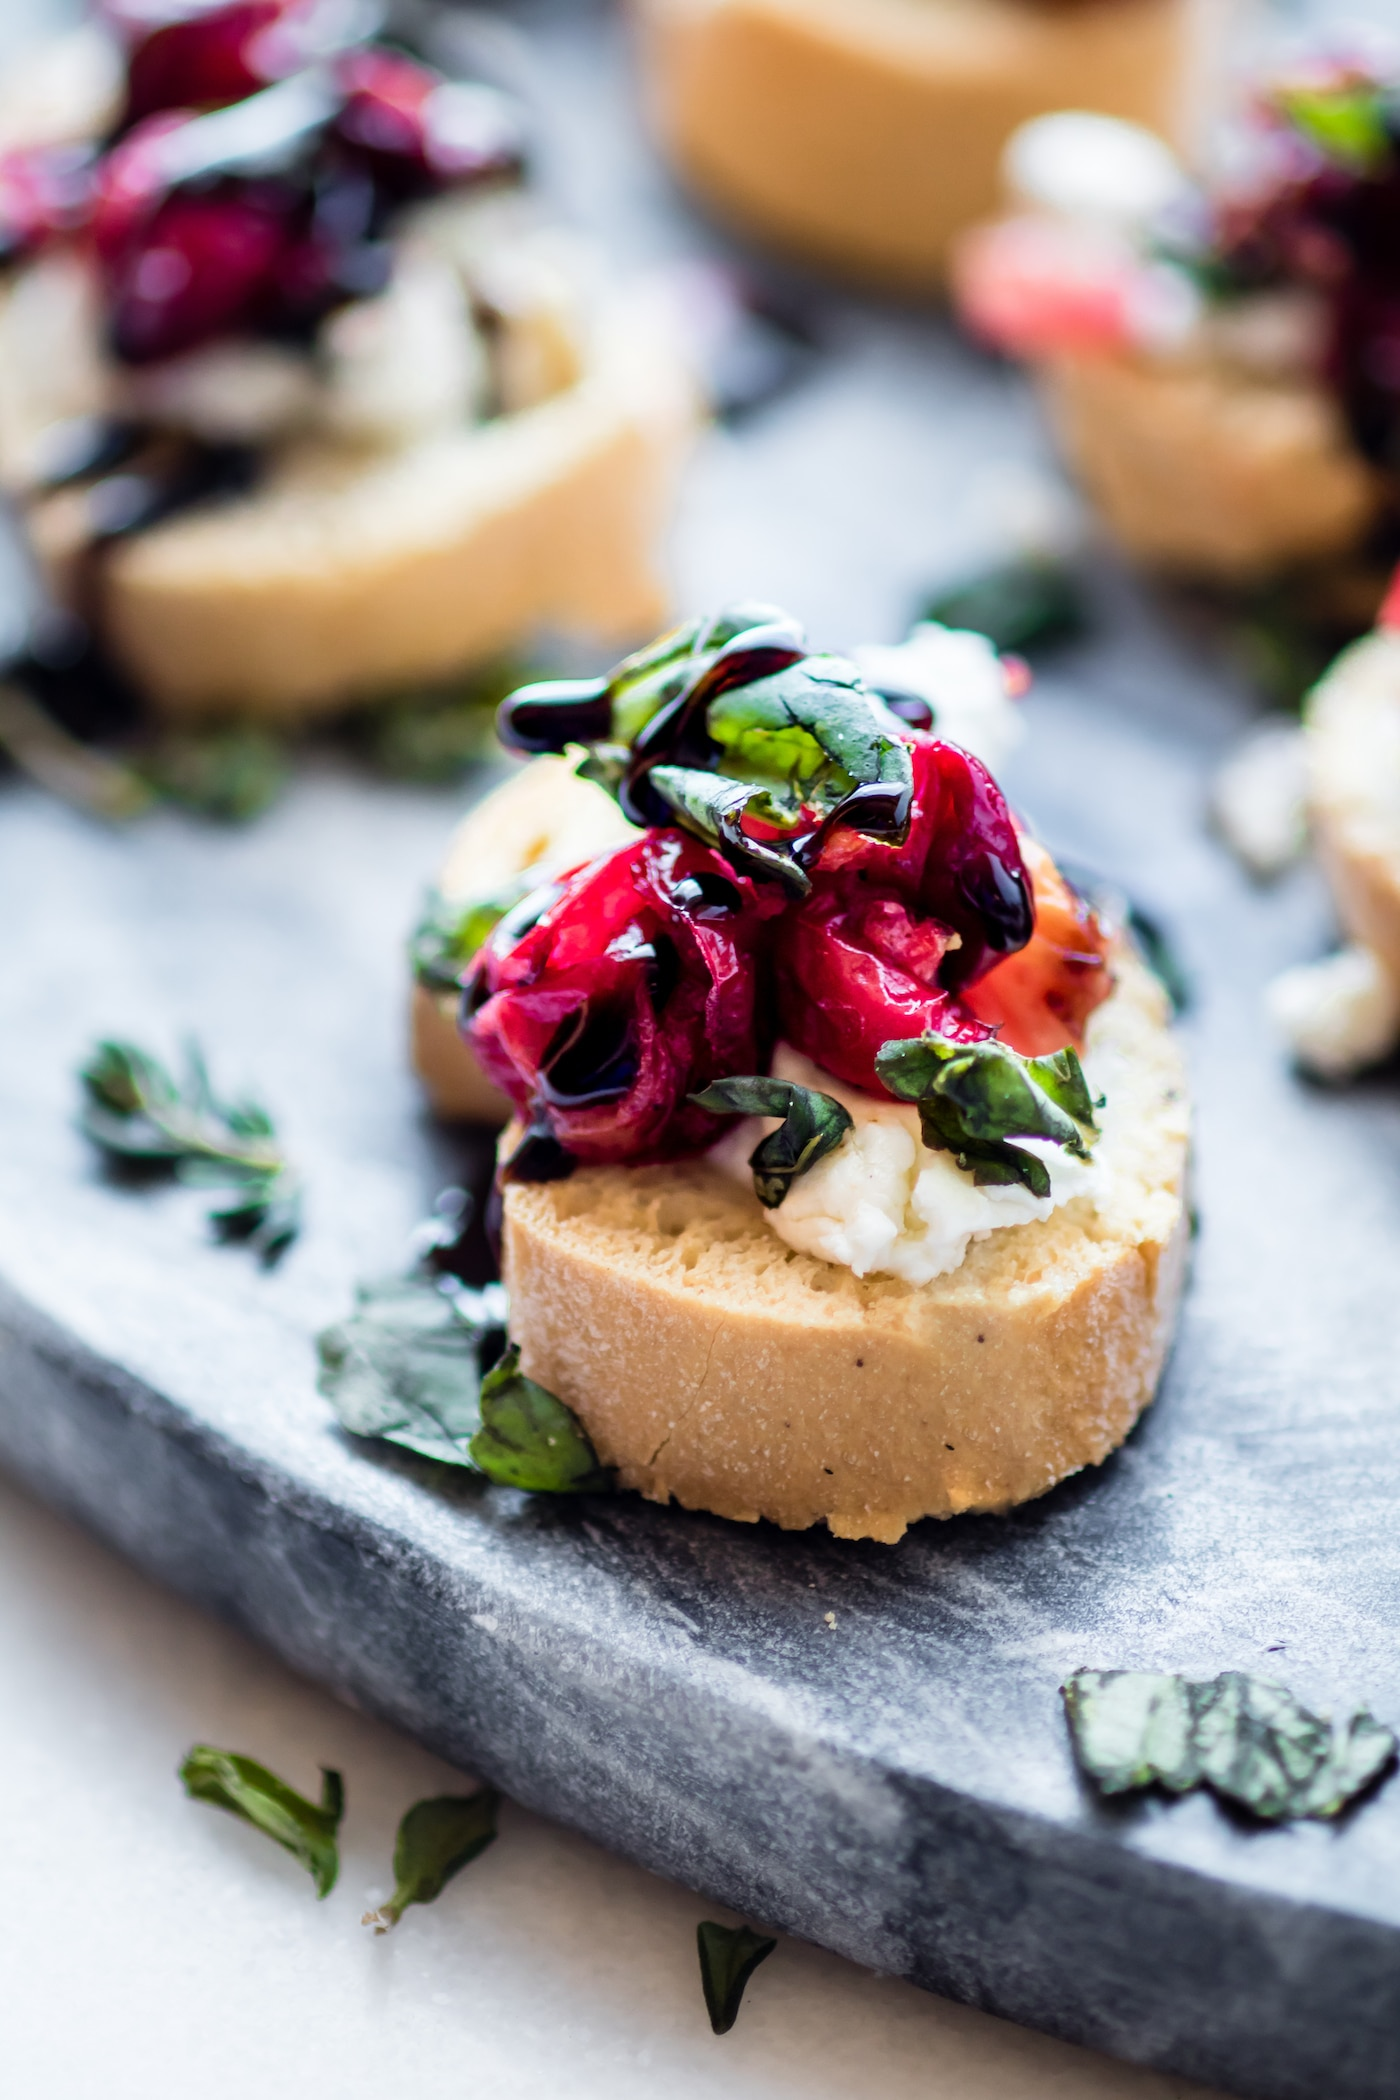 A Gluten Free Crostini baked appetizer recipe perfect for the holidays! This quick cranberry goat cheese gluten free crostini is made with roasted balsamic cranberries, sweet onion, then topped with fresh basil and balsamic glaze. Super quick, easy, healthy, and a delicious! One of my favorite crowd-pleasing appetizers.